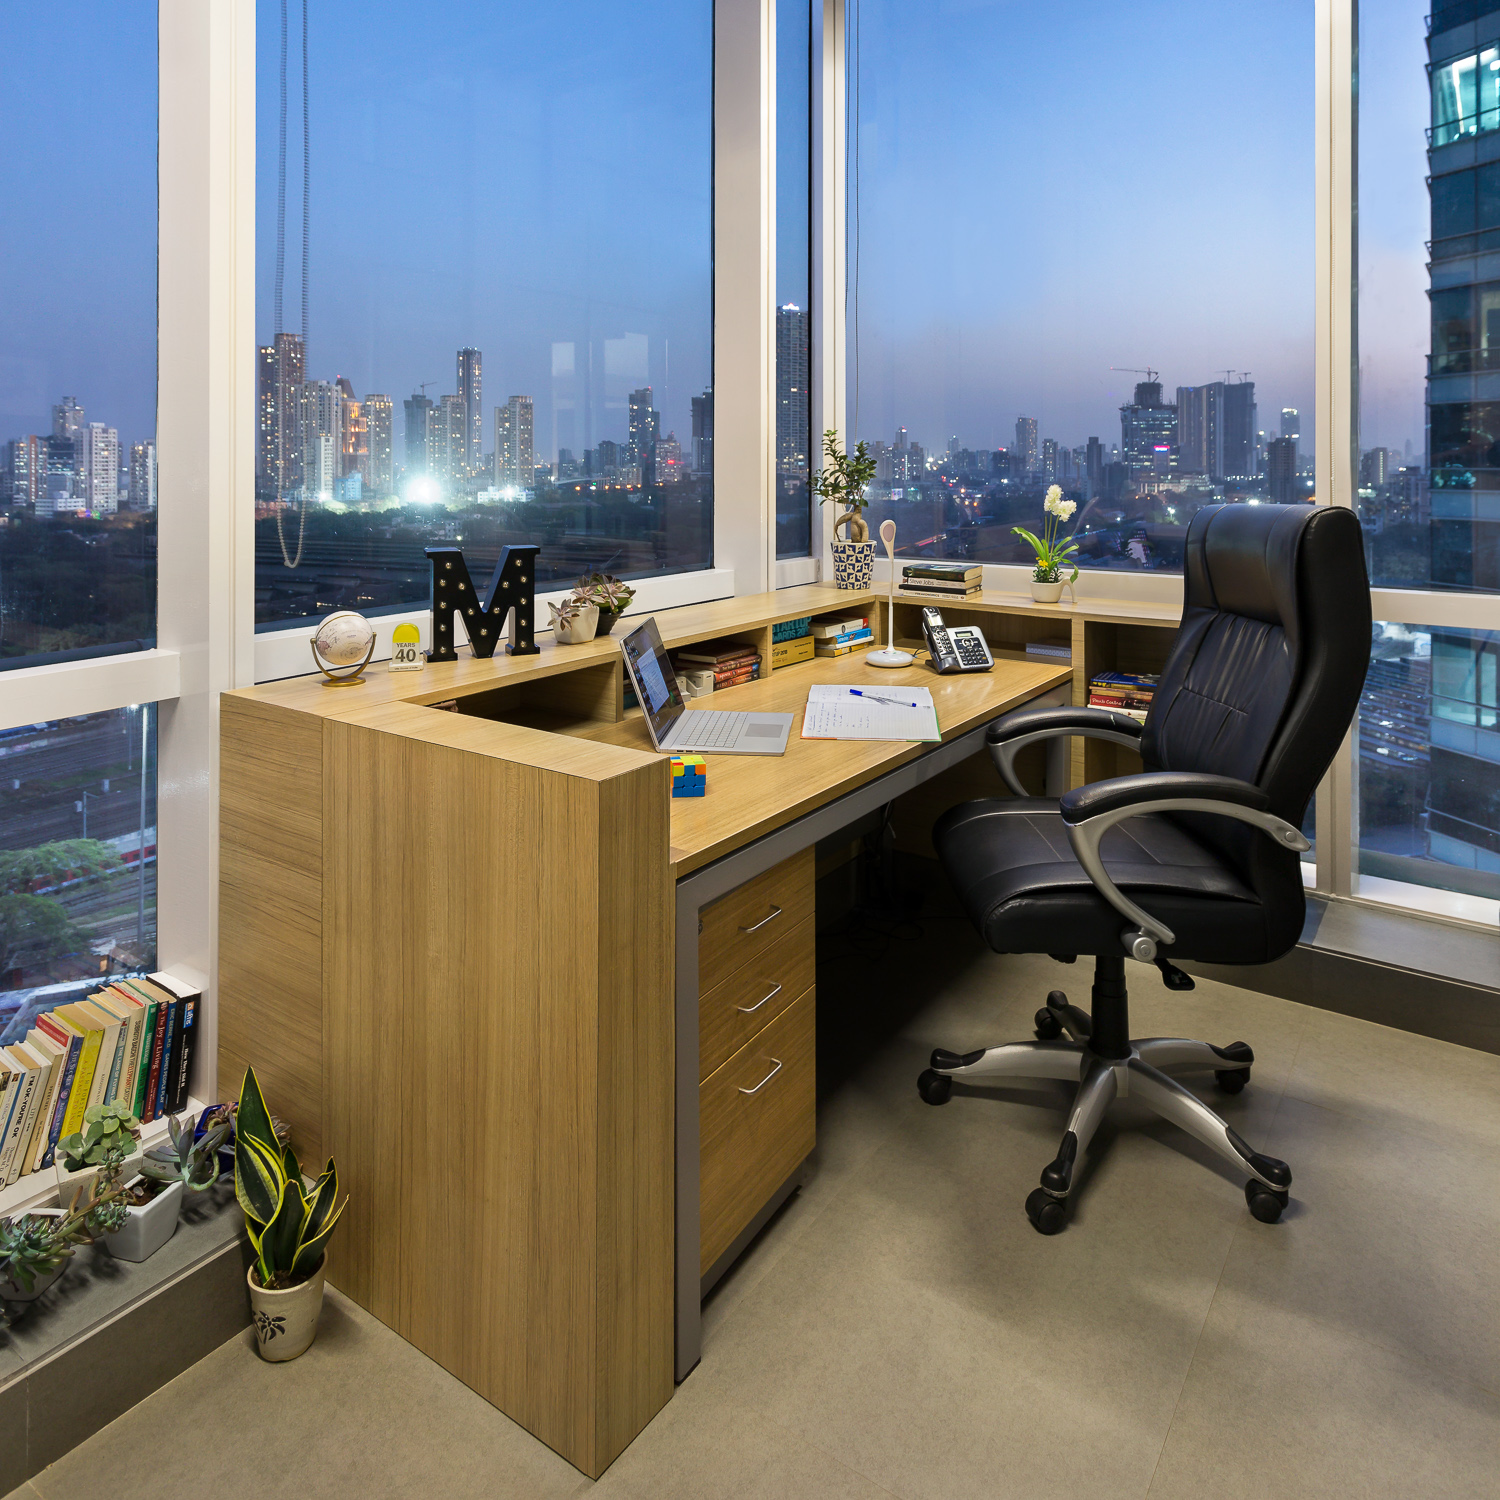 Happy Office, India Bulls, at Lower Parel, Mumbai, by Studio Osmosis 28